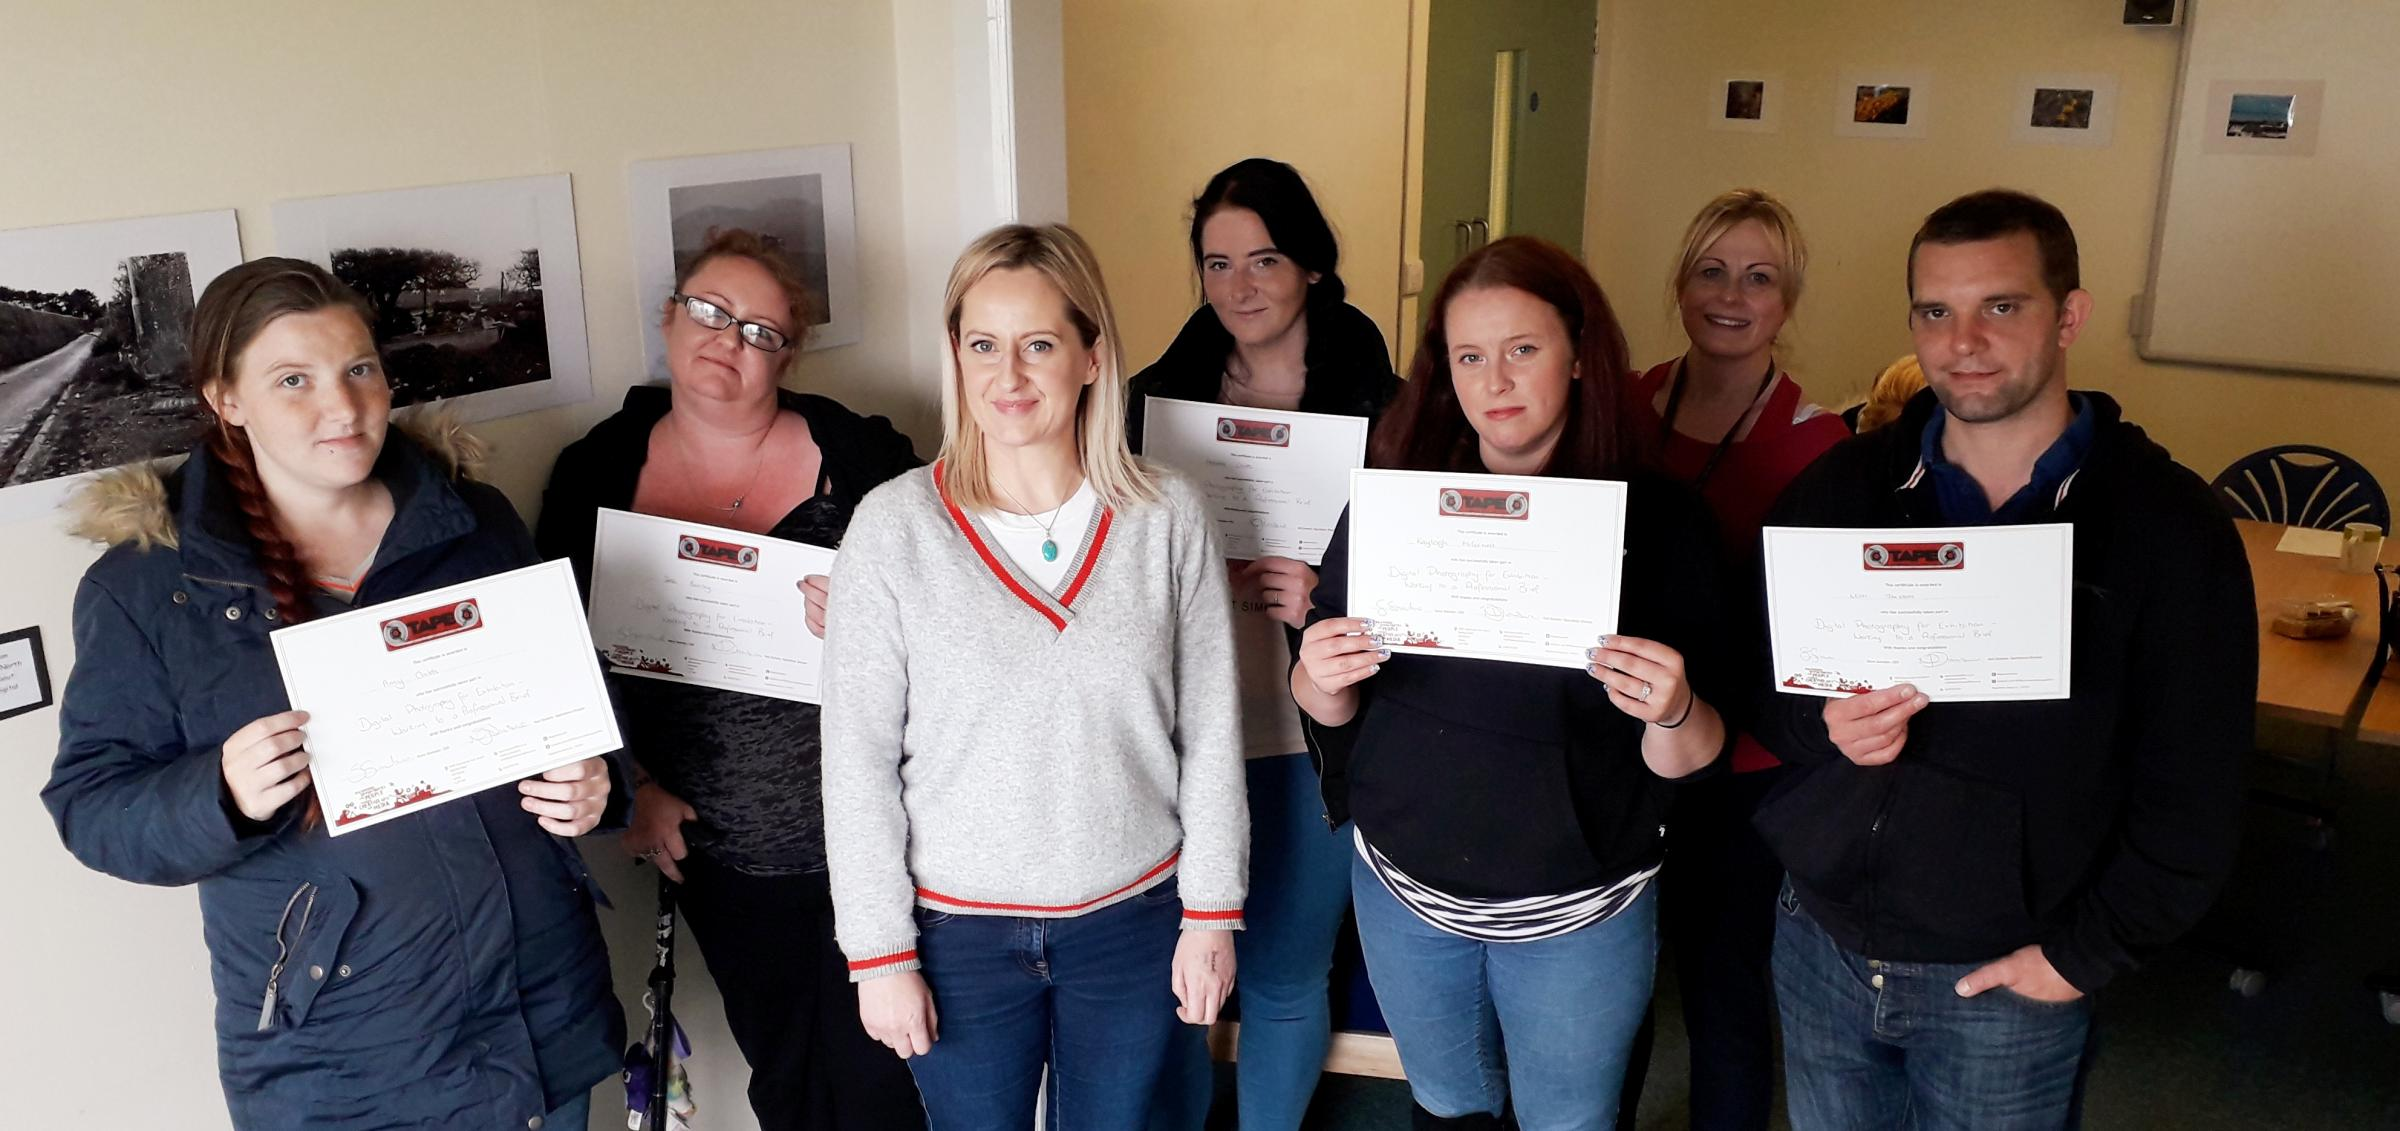 Amy and Natasha Childs, Kirsten Buchanan project manager TAPE creative sparks, Jess Barclay, Kayleigh McCormack, Joanna Howells, parent trainer teacher at Swn y Don, and Leon Jackson. Picture: Kerry Roberts